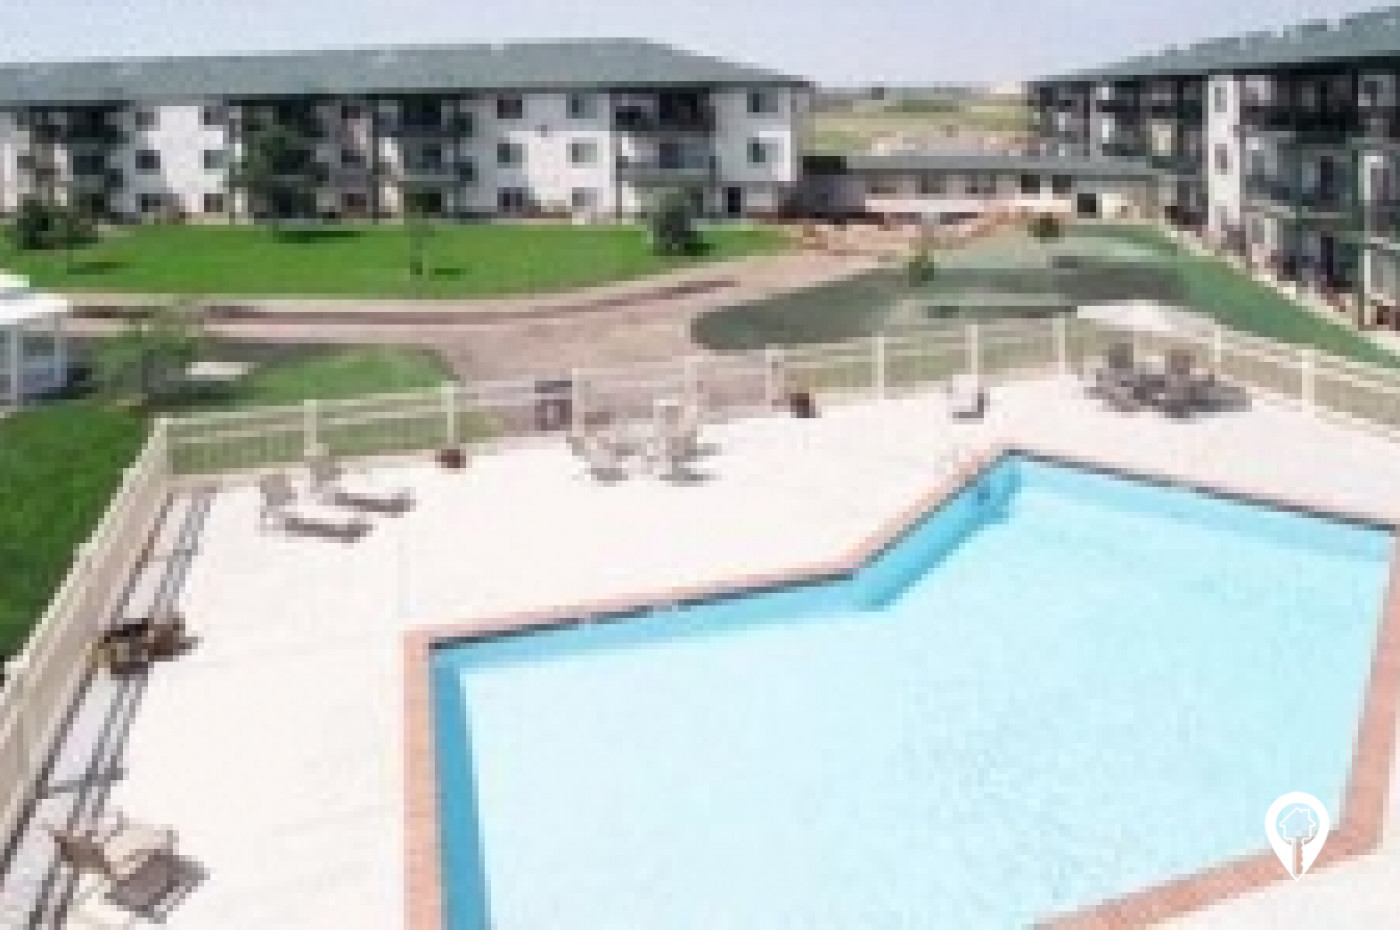 Donegal Pointe Apartments